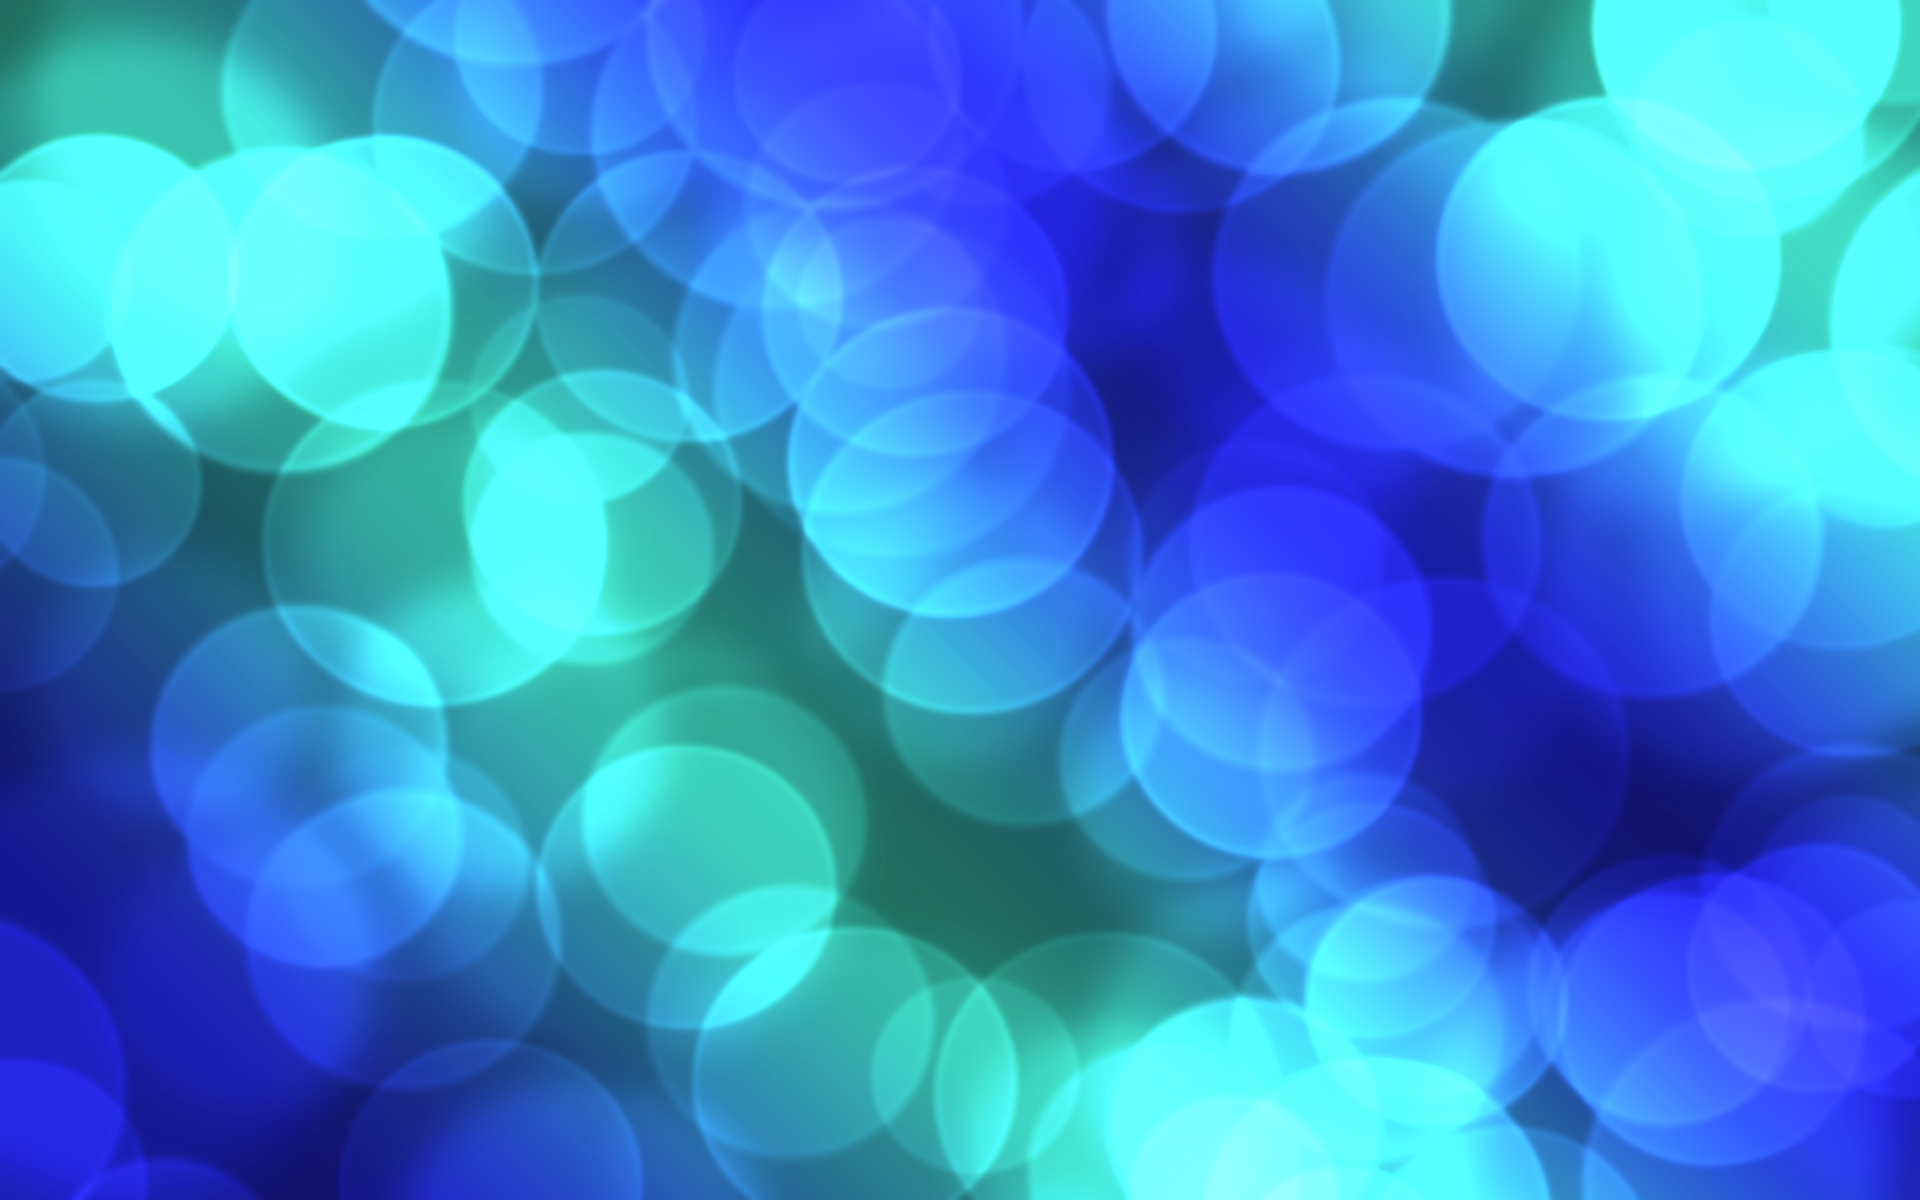 Free stock photo of light, art, blue, pattern